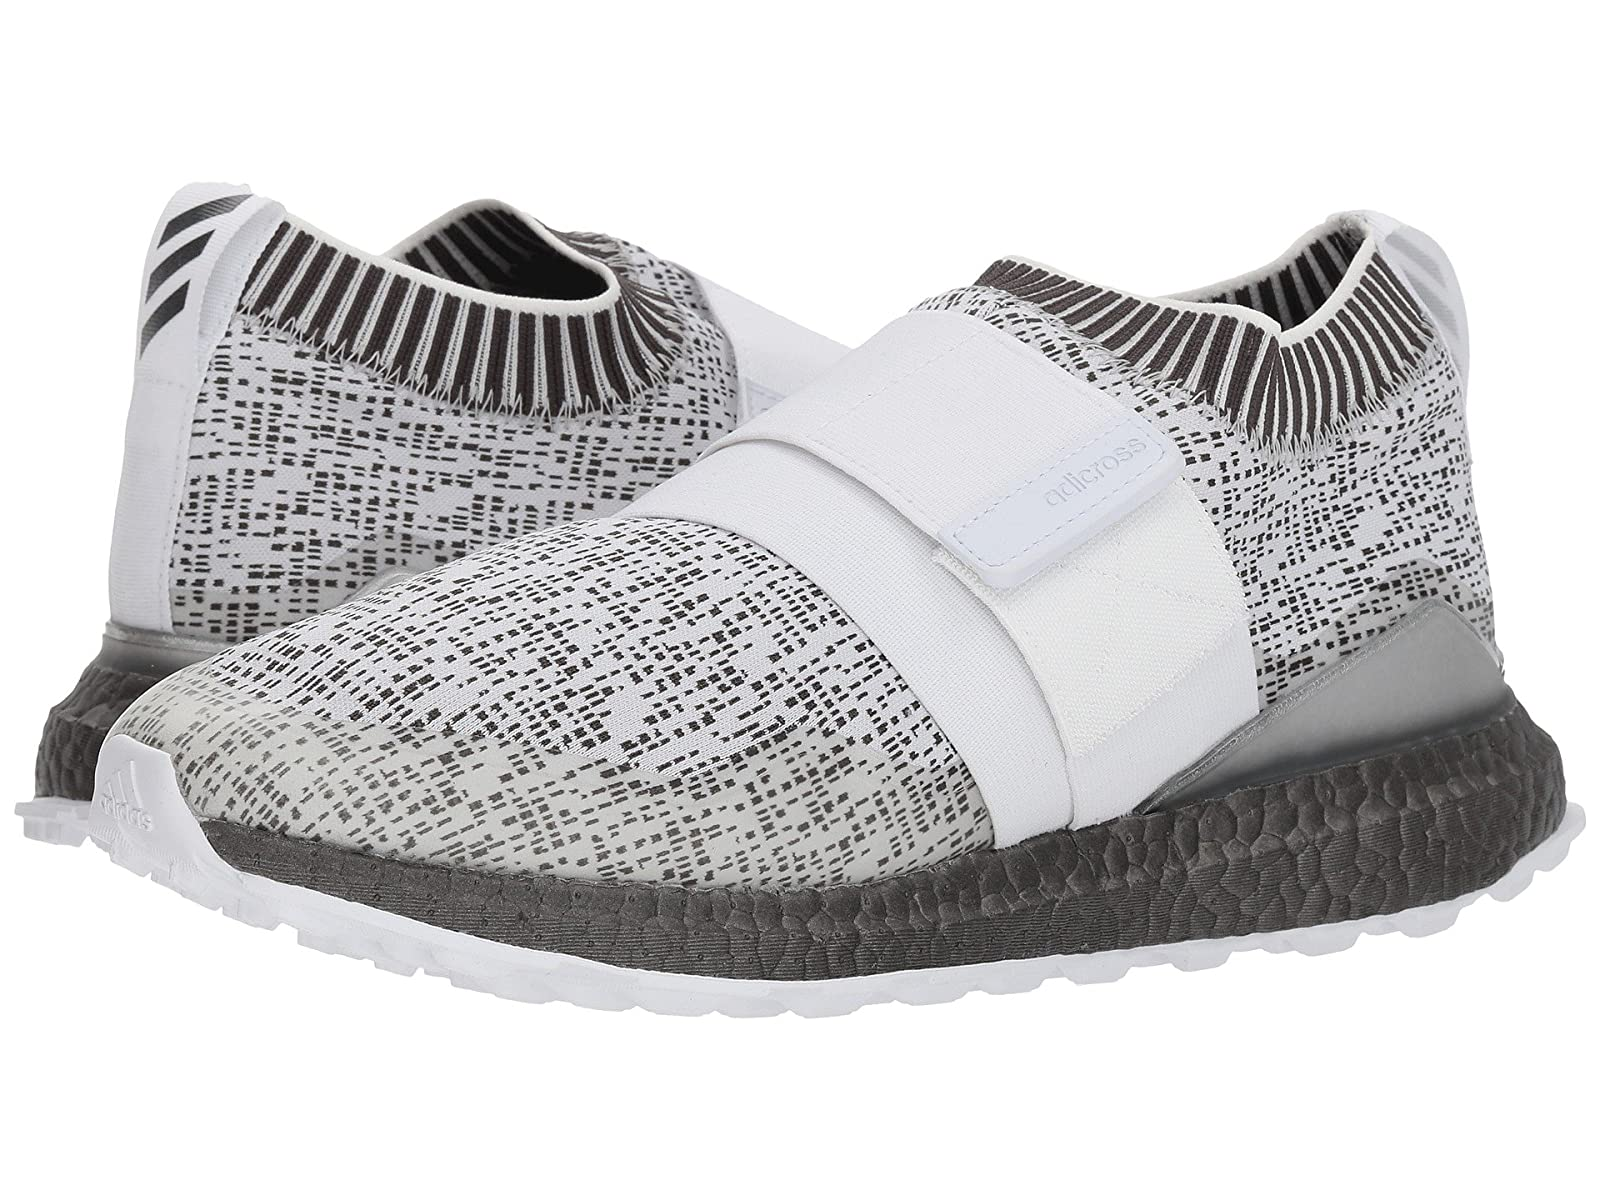 adidas Golf Crossknit 2.0Atmospheric grades have affordable shoes